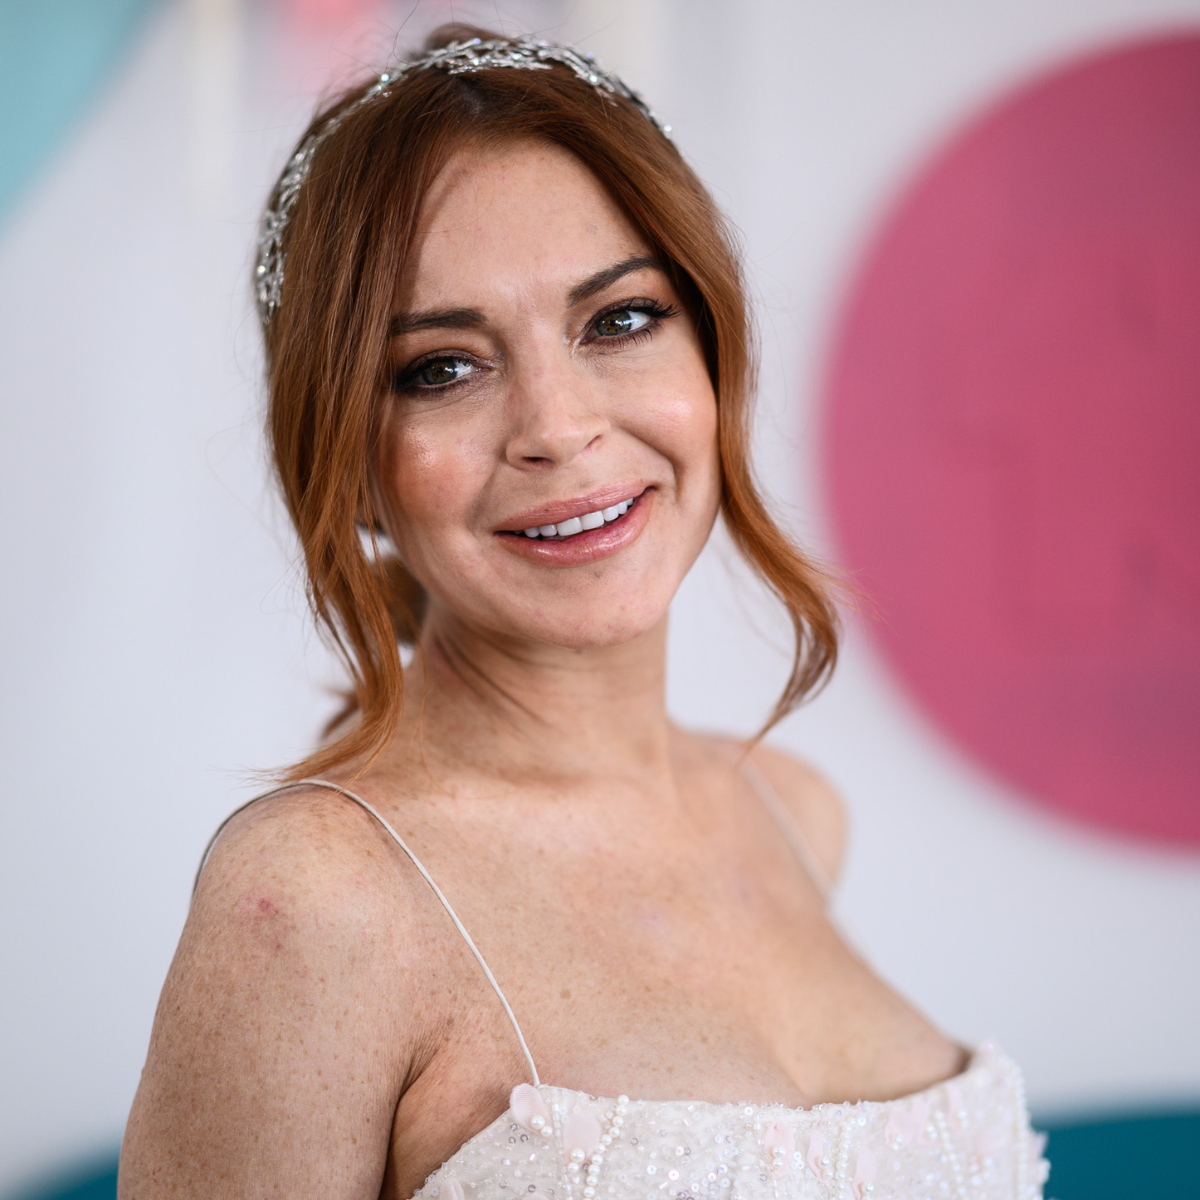 Lindsay Lohan REVEALS she will release a new music soon; Details Inside